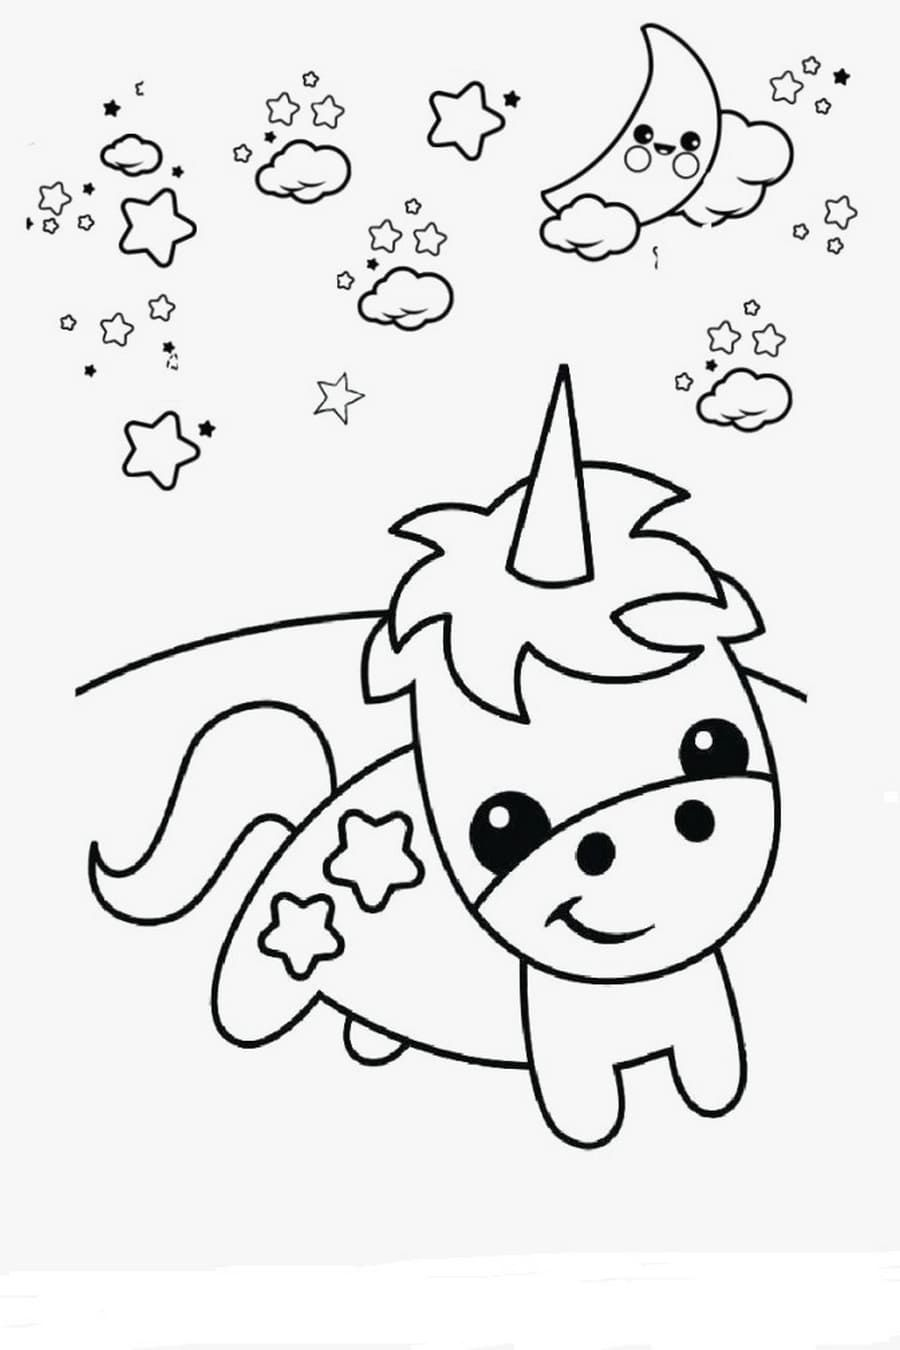 unicorn anime coloring pages unicorn coloring child coloring coloring pages anime unicorn